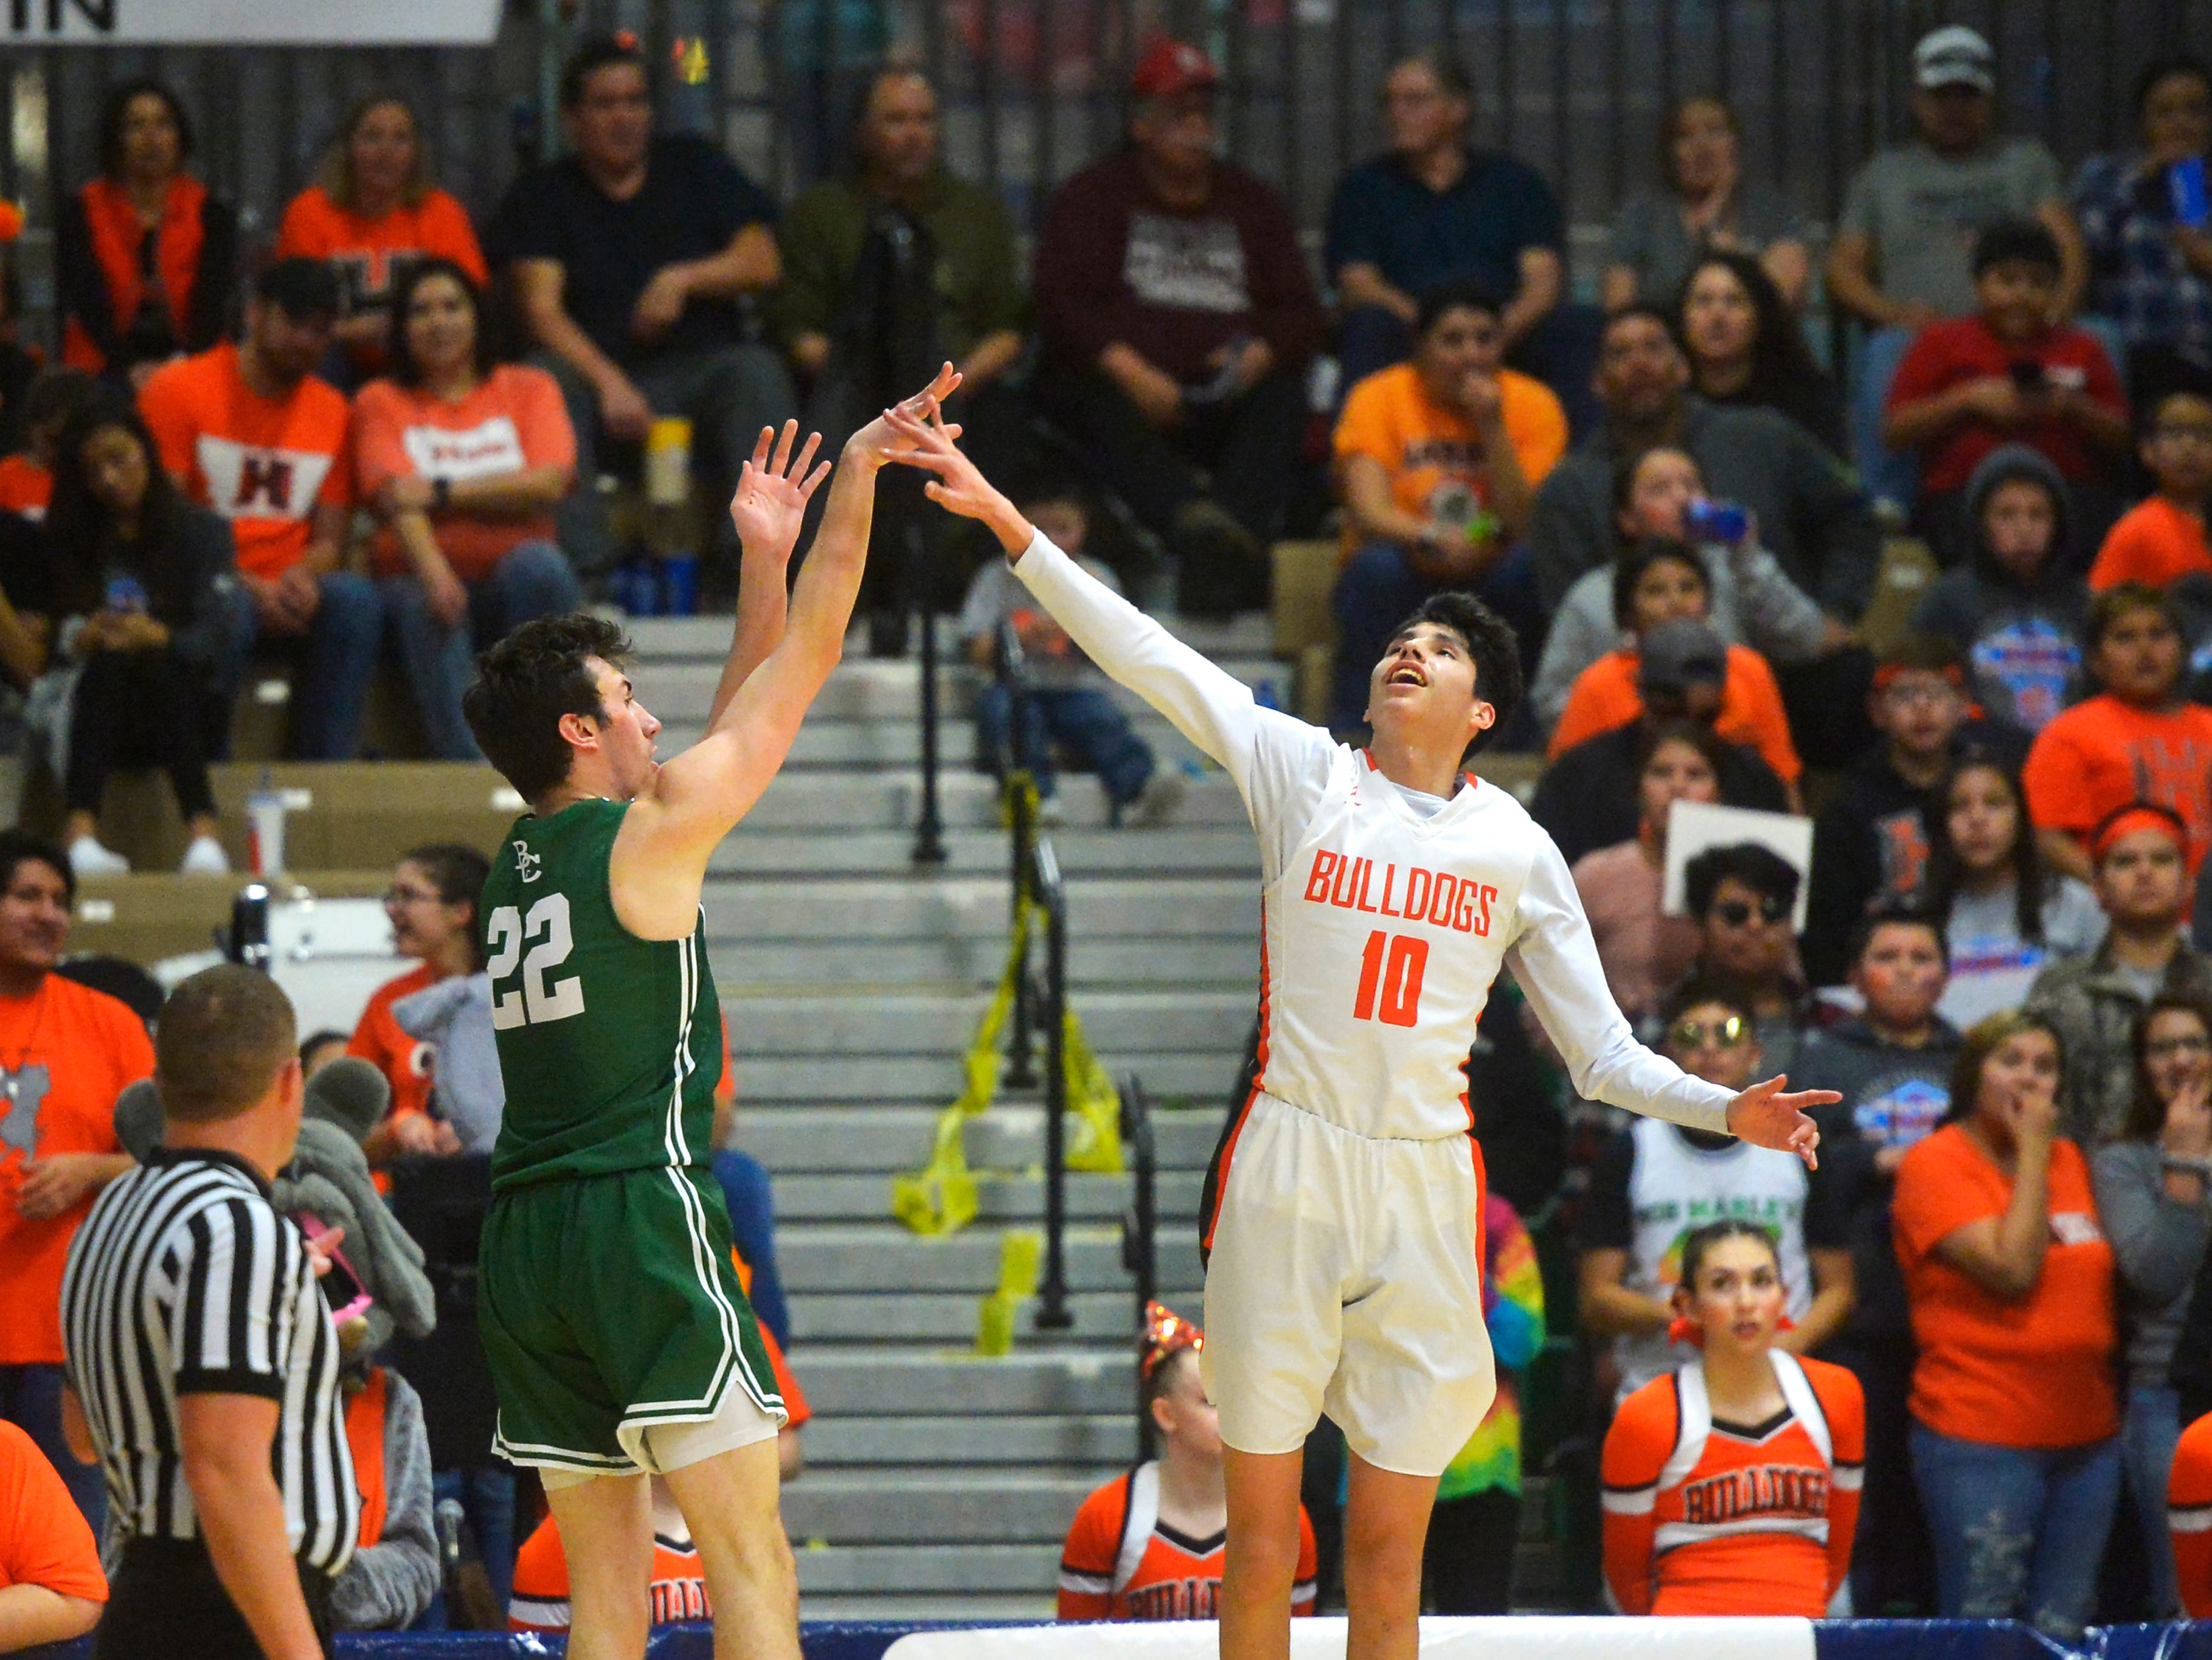 Billings Central's Cade Herriford attempts a shot as Hardin's Trae Hugs defends in the title game of the State Class A Basketball Tournament in the Four Seasons Arena, Saturday.